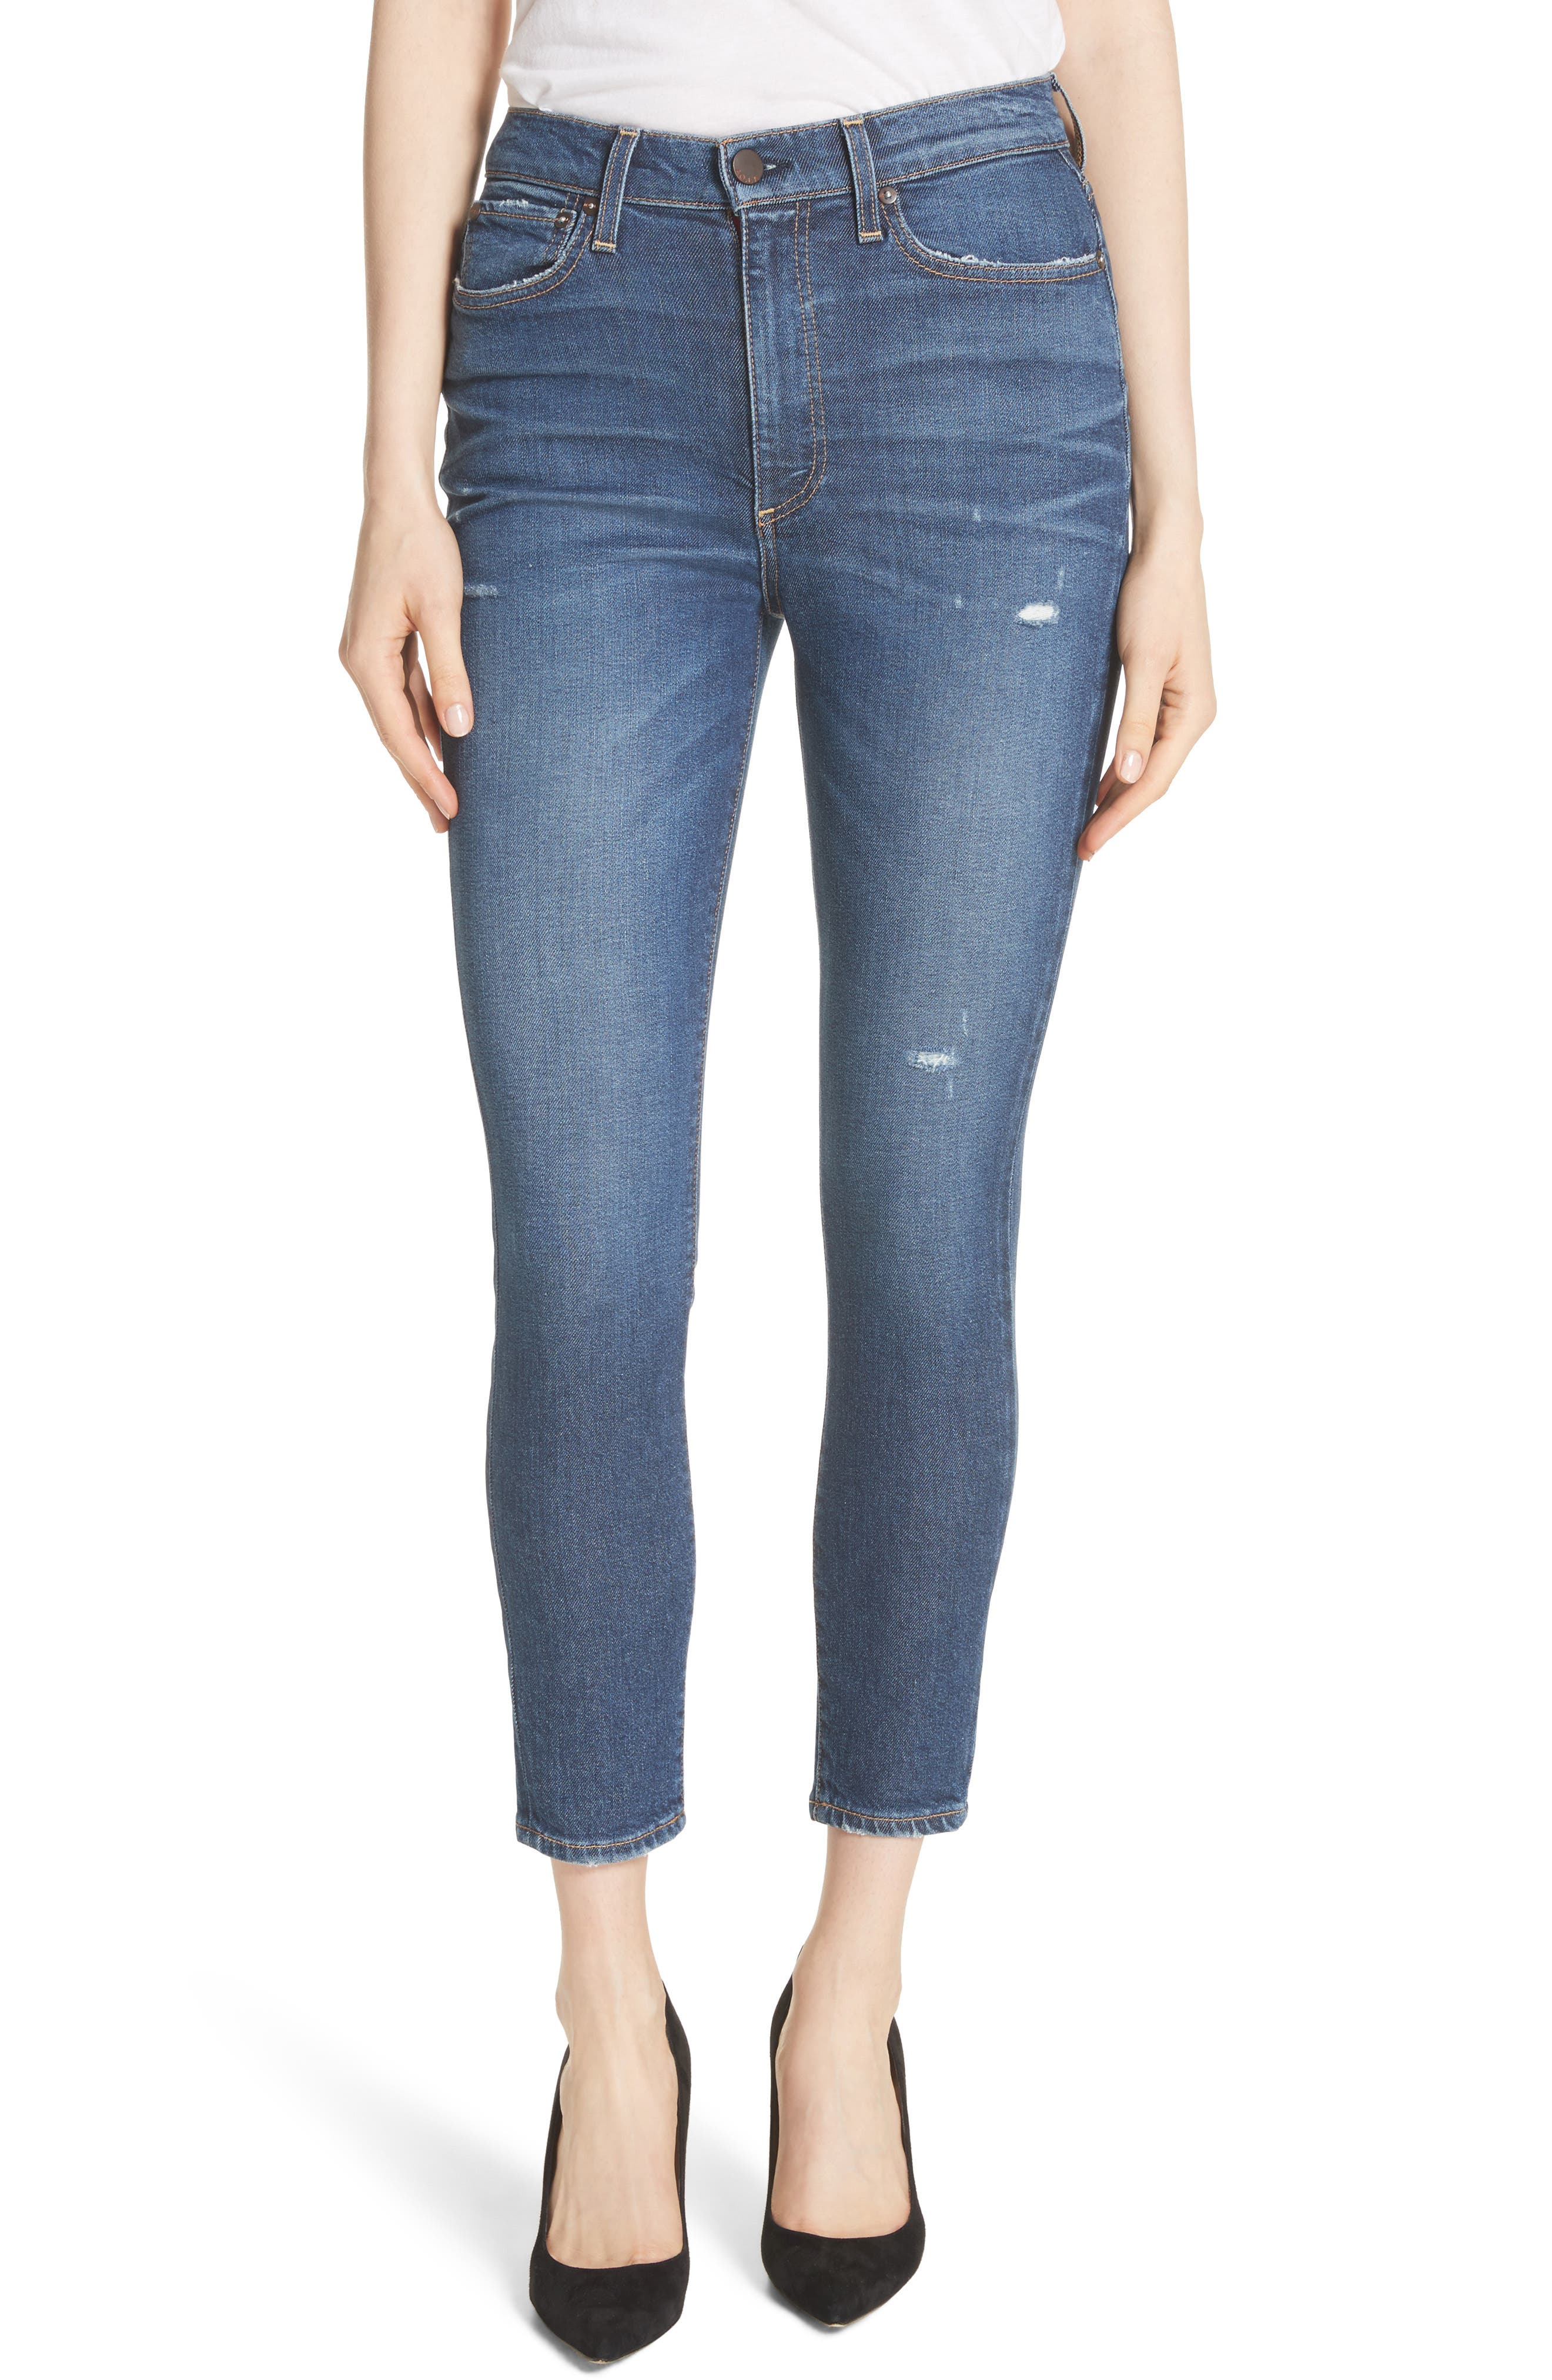 AO.LA Good High Waist Ankle Skinny Jeans,                         Main,                         color, Born To Run